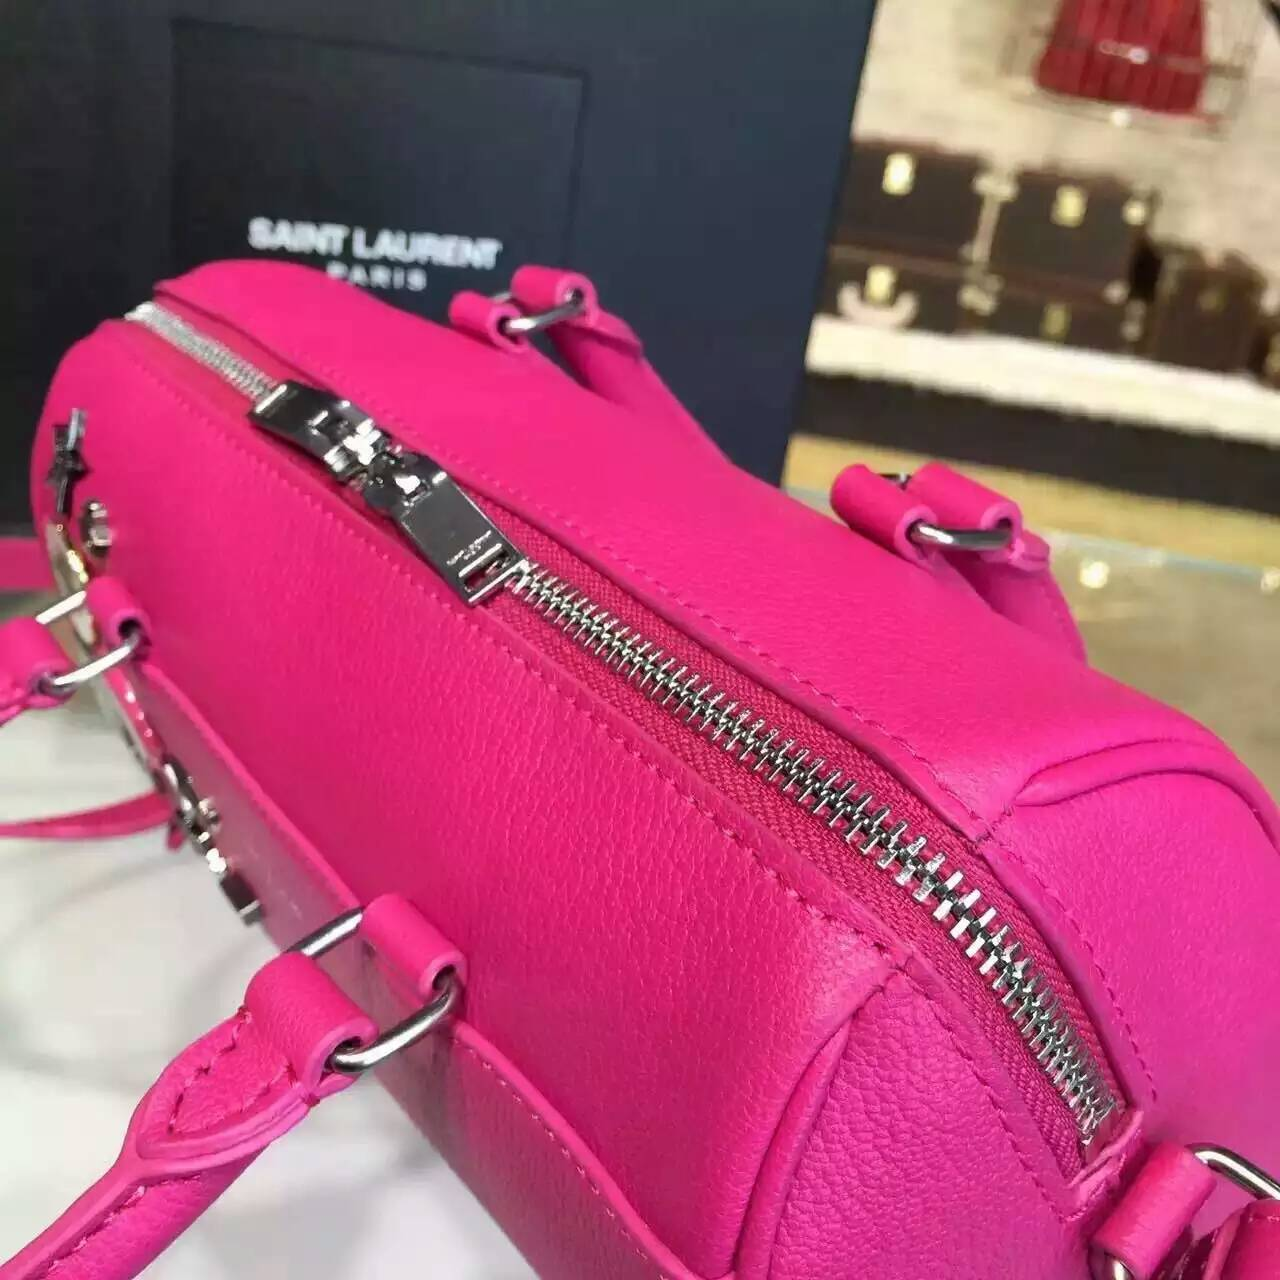 Limited Edition!2015 New Saint Laurent Bag Cheap Sale-Saint Laurent Monogram Cabas Bag in Rose Grained Calfskin Leather